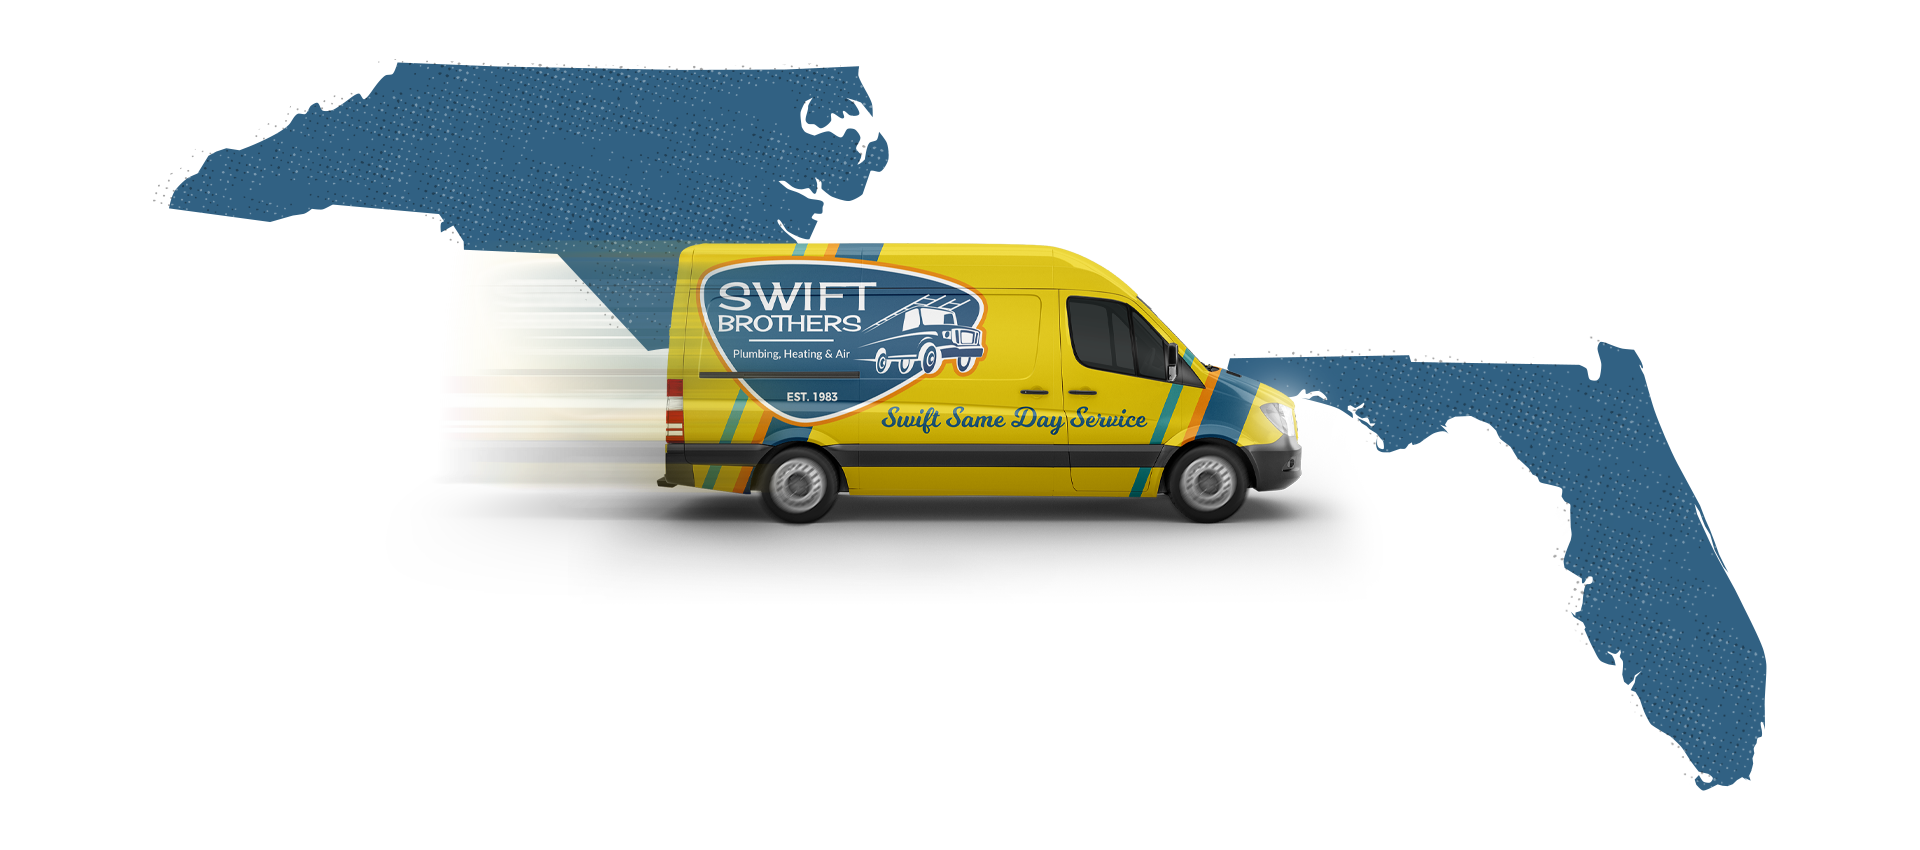 Swift Brothers Van - Service Areas Map